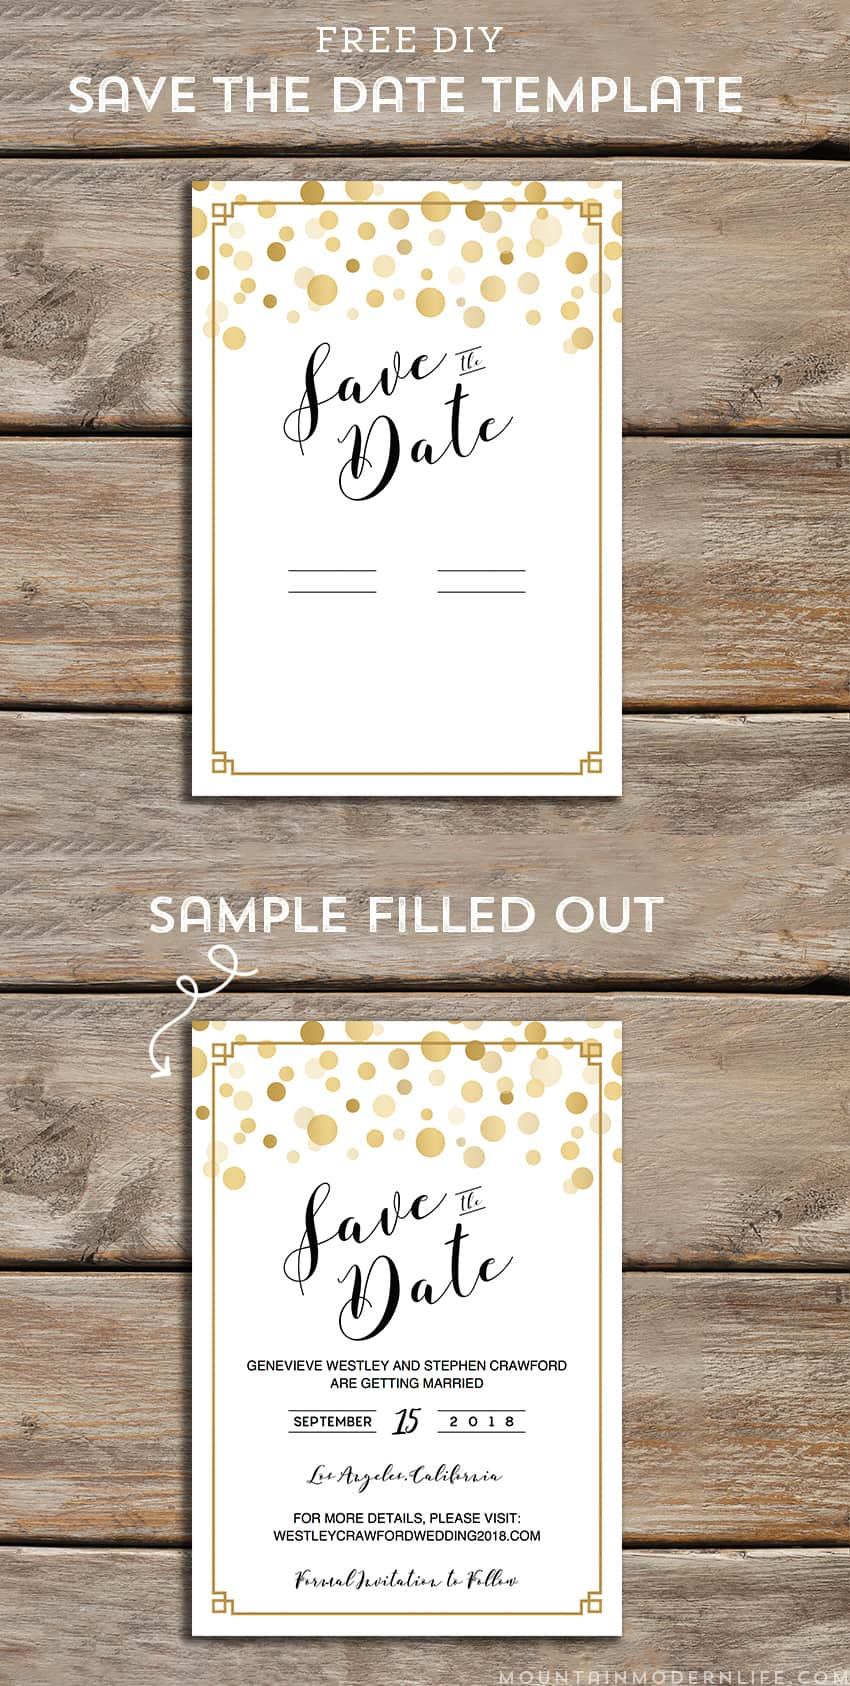 Download and customize this FREE Gold Modern DIY save the date template and then print as many copies as you need! MoutainModernLife.com